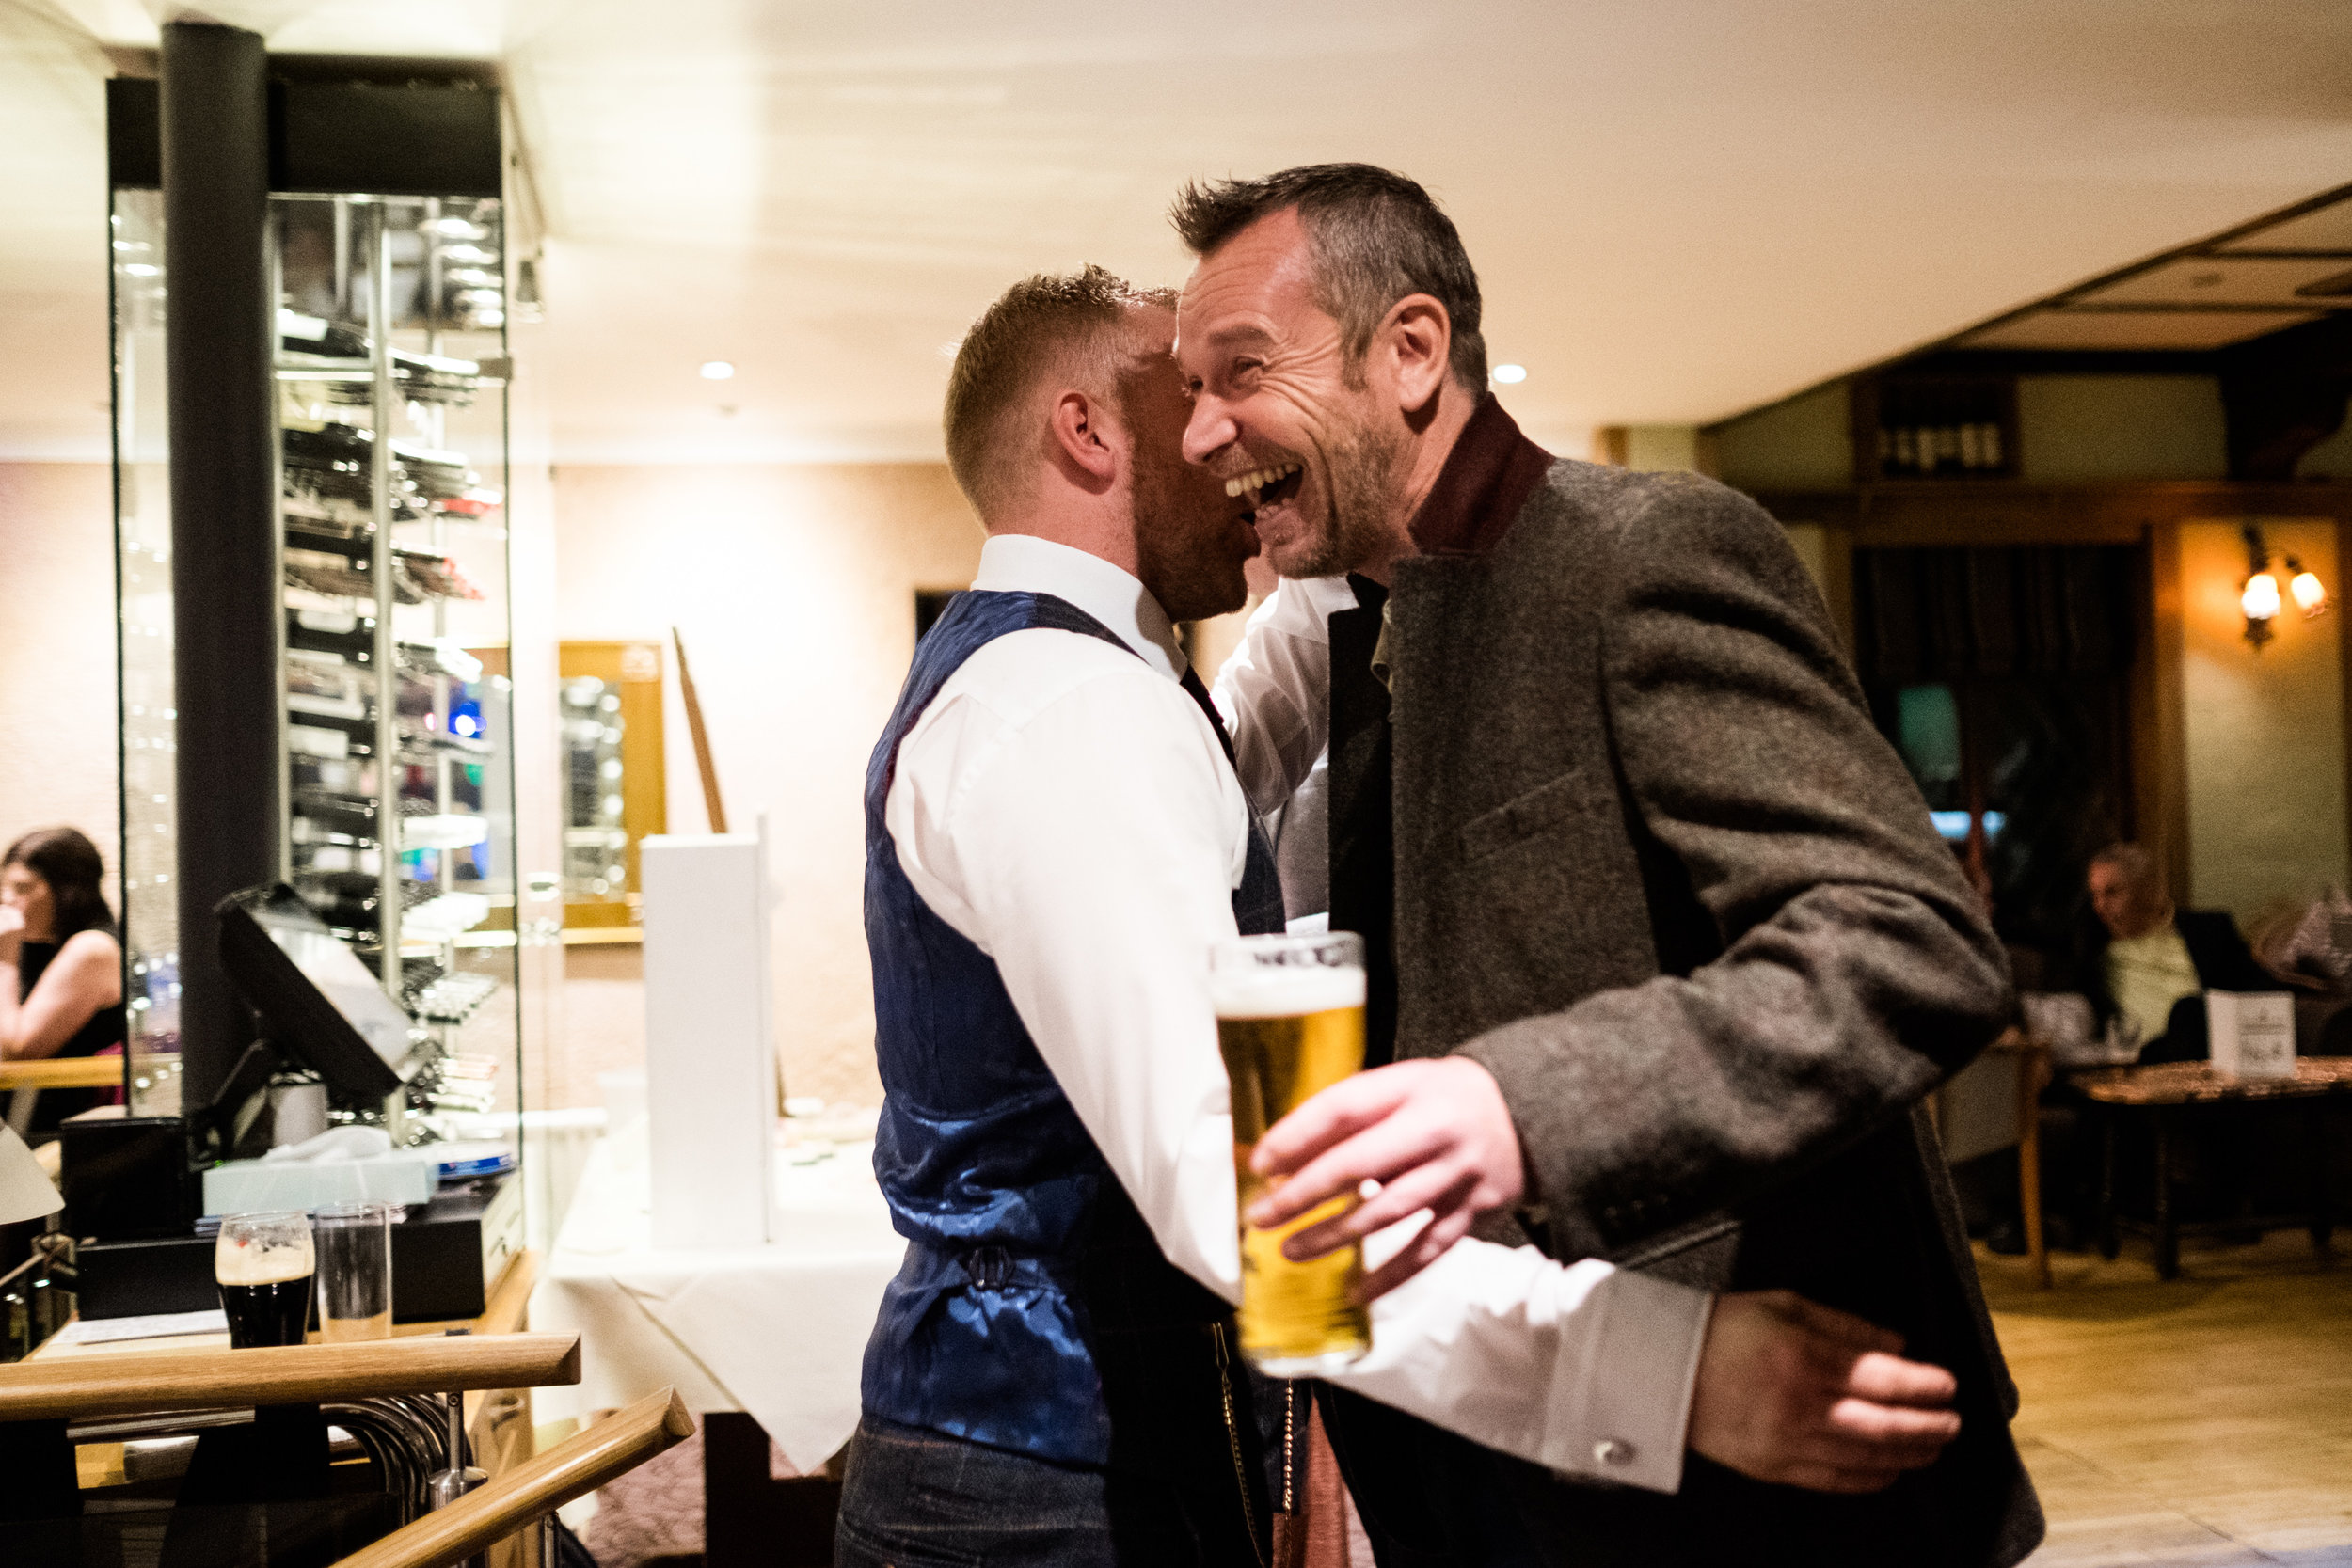 Autumn Wedding Photography at The Three Horseshoes, Blackshaw Moor, Staffordshire Moorlands - Jenny Harper-52.jpg